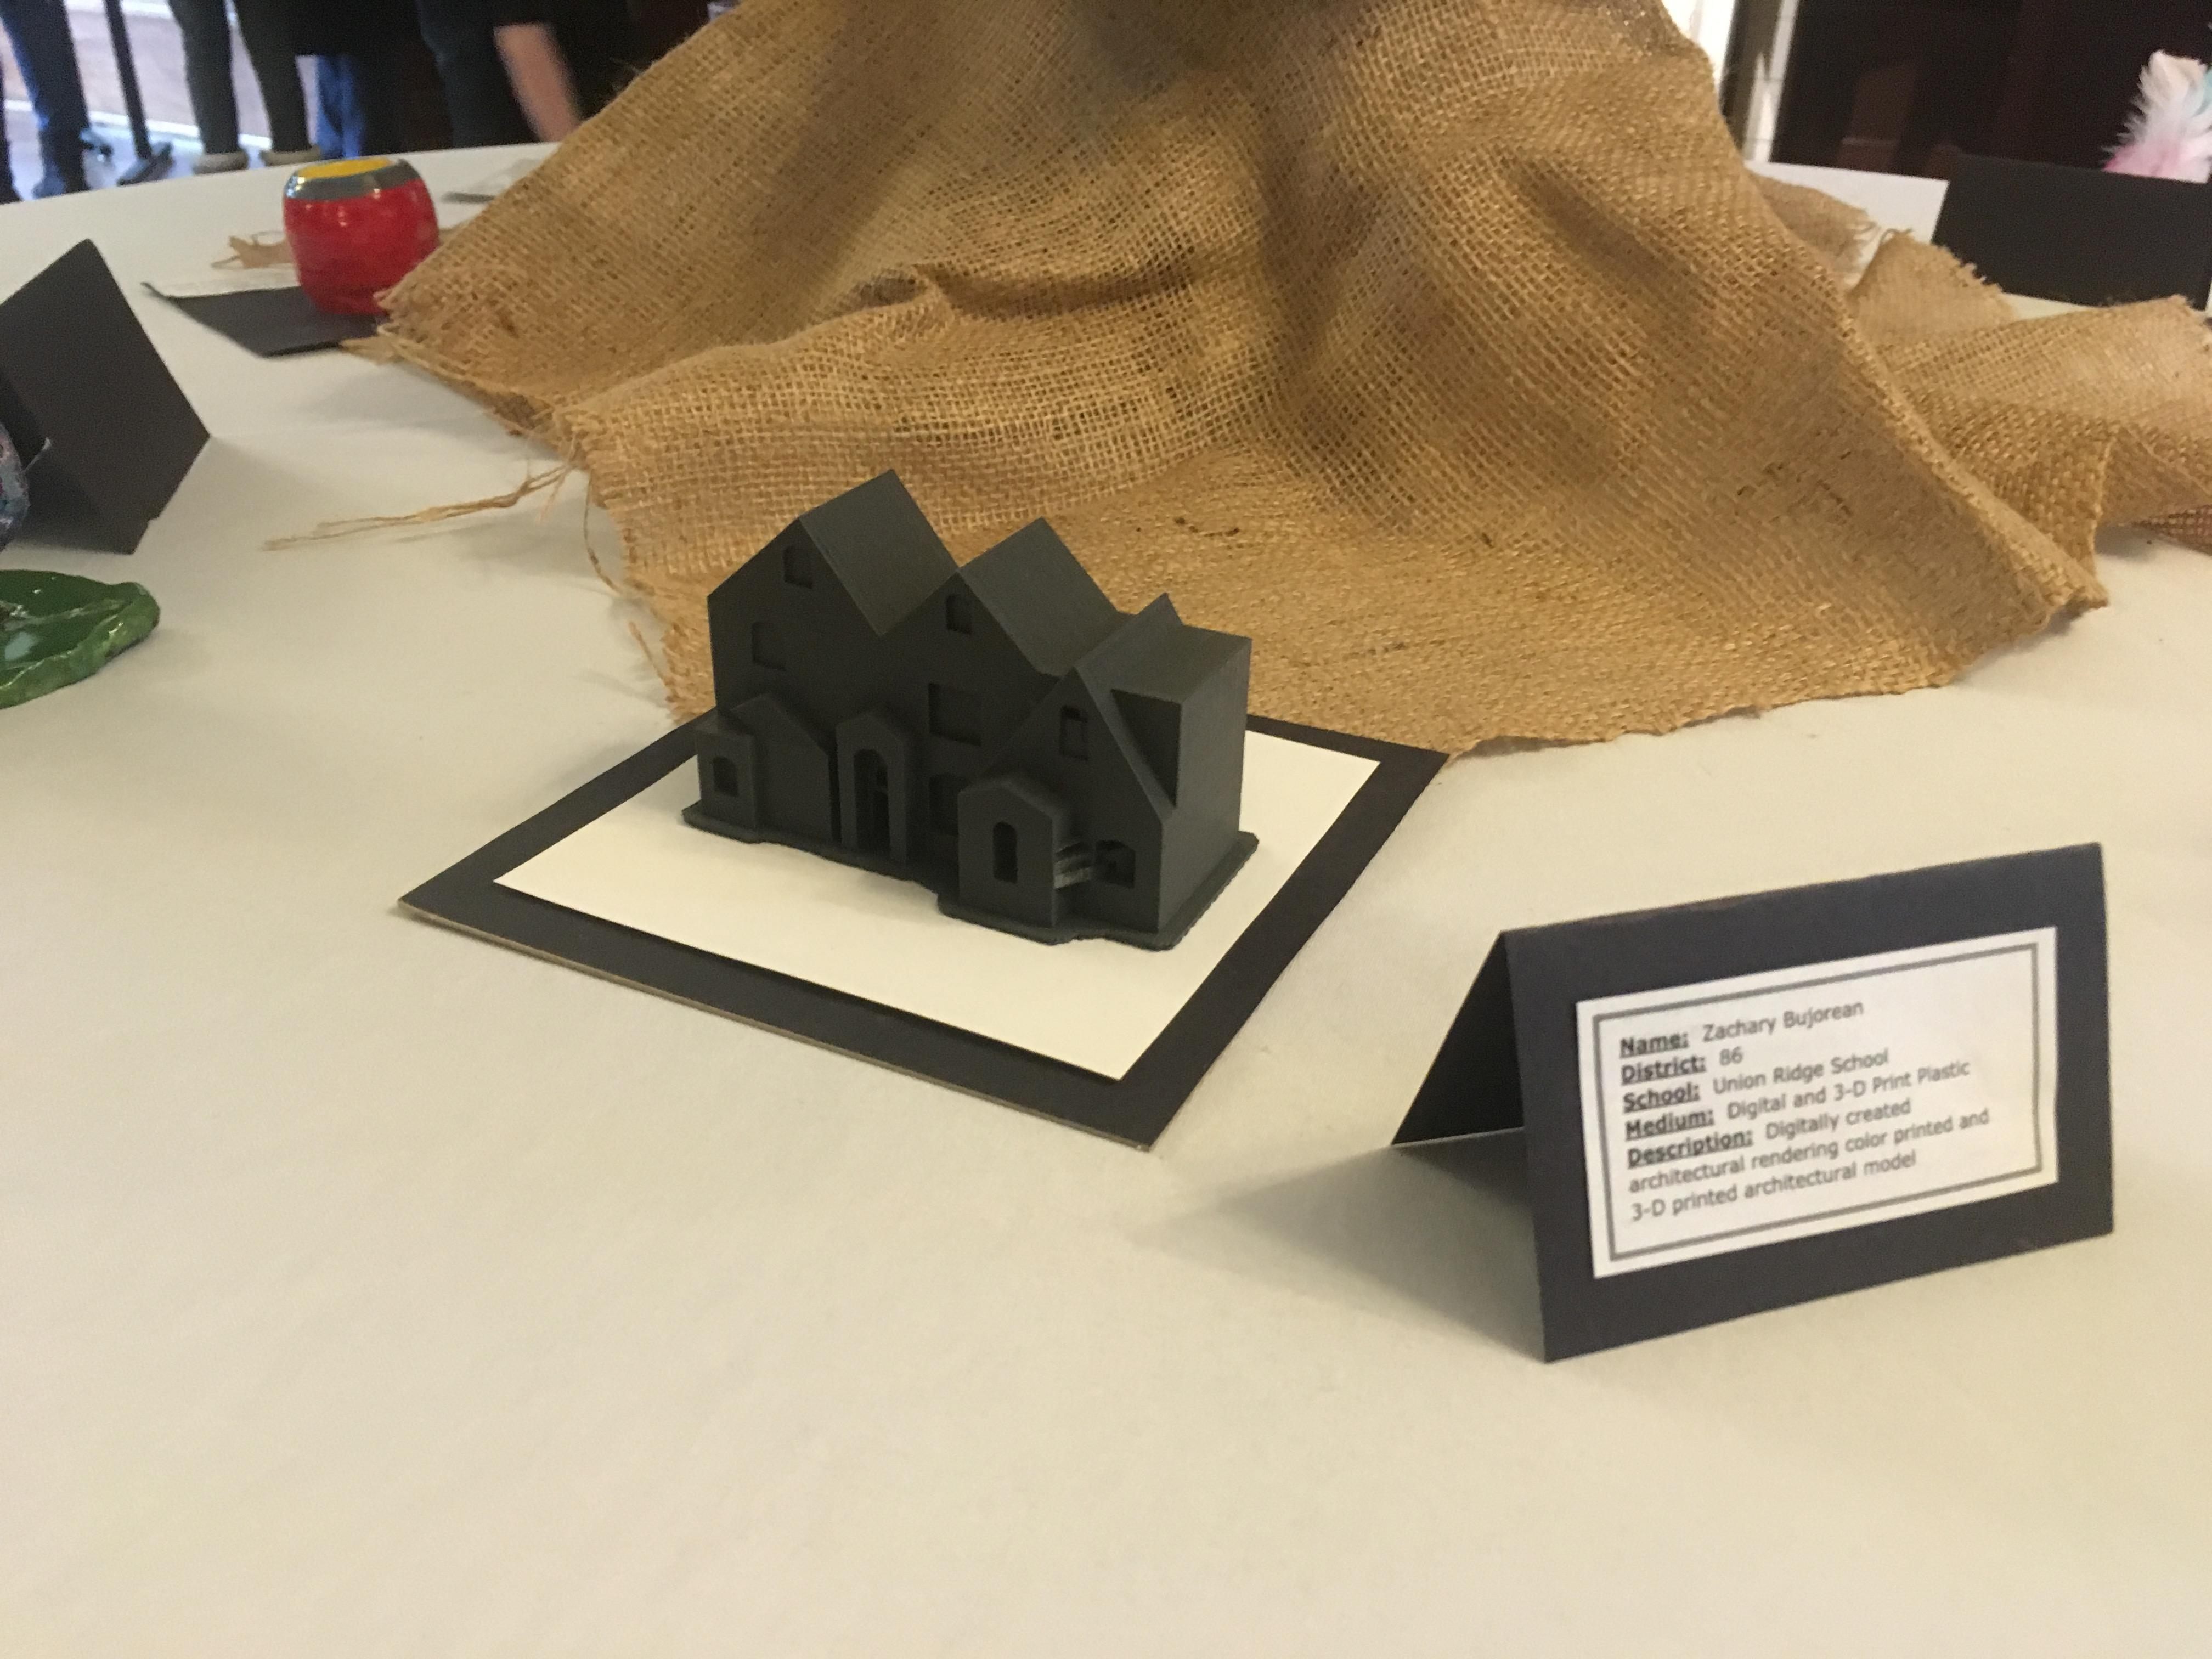 artwork exposition, 3d printed house